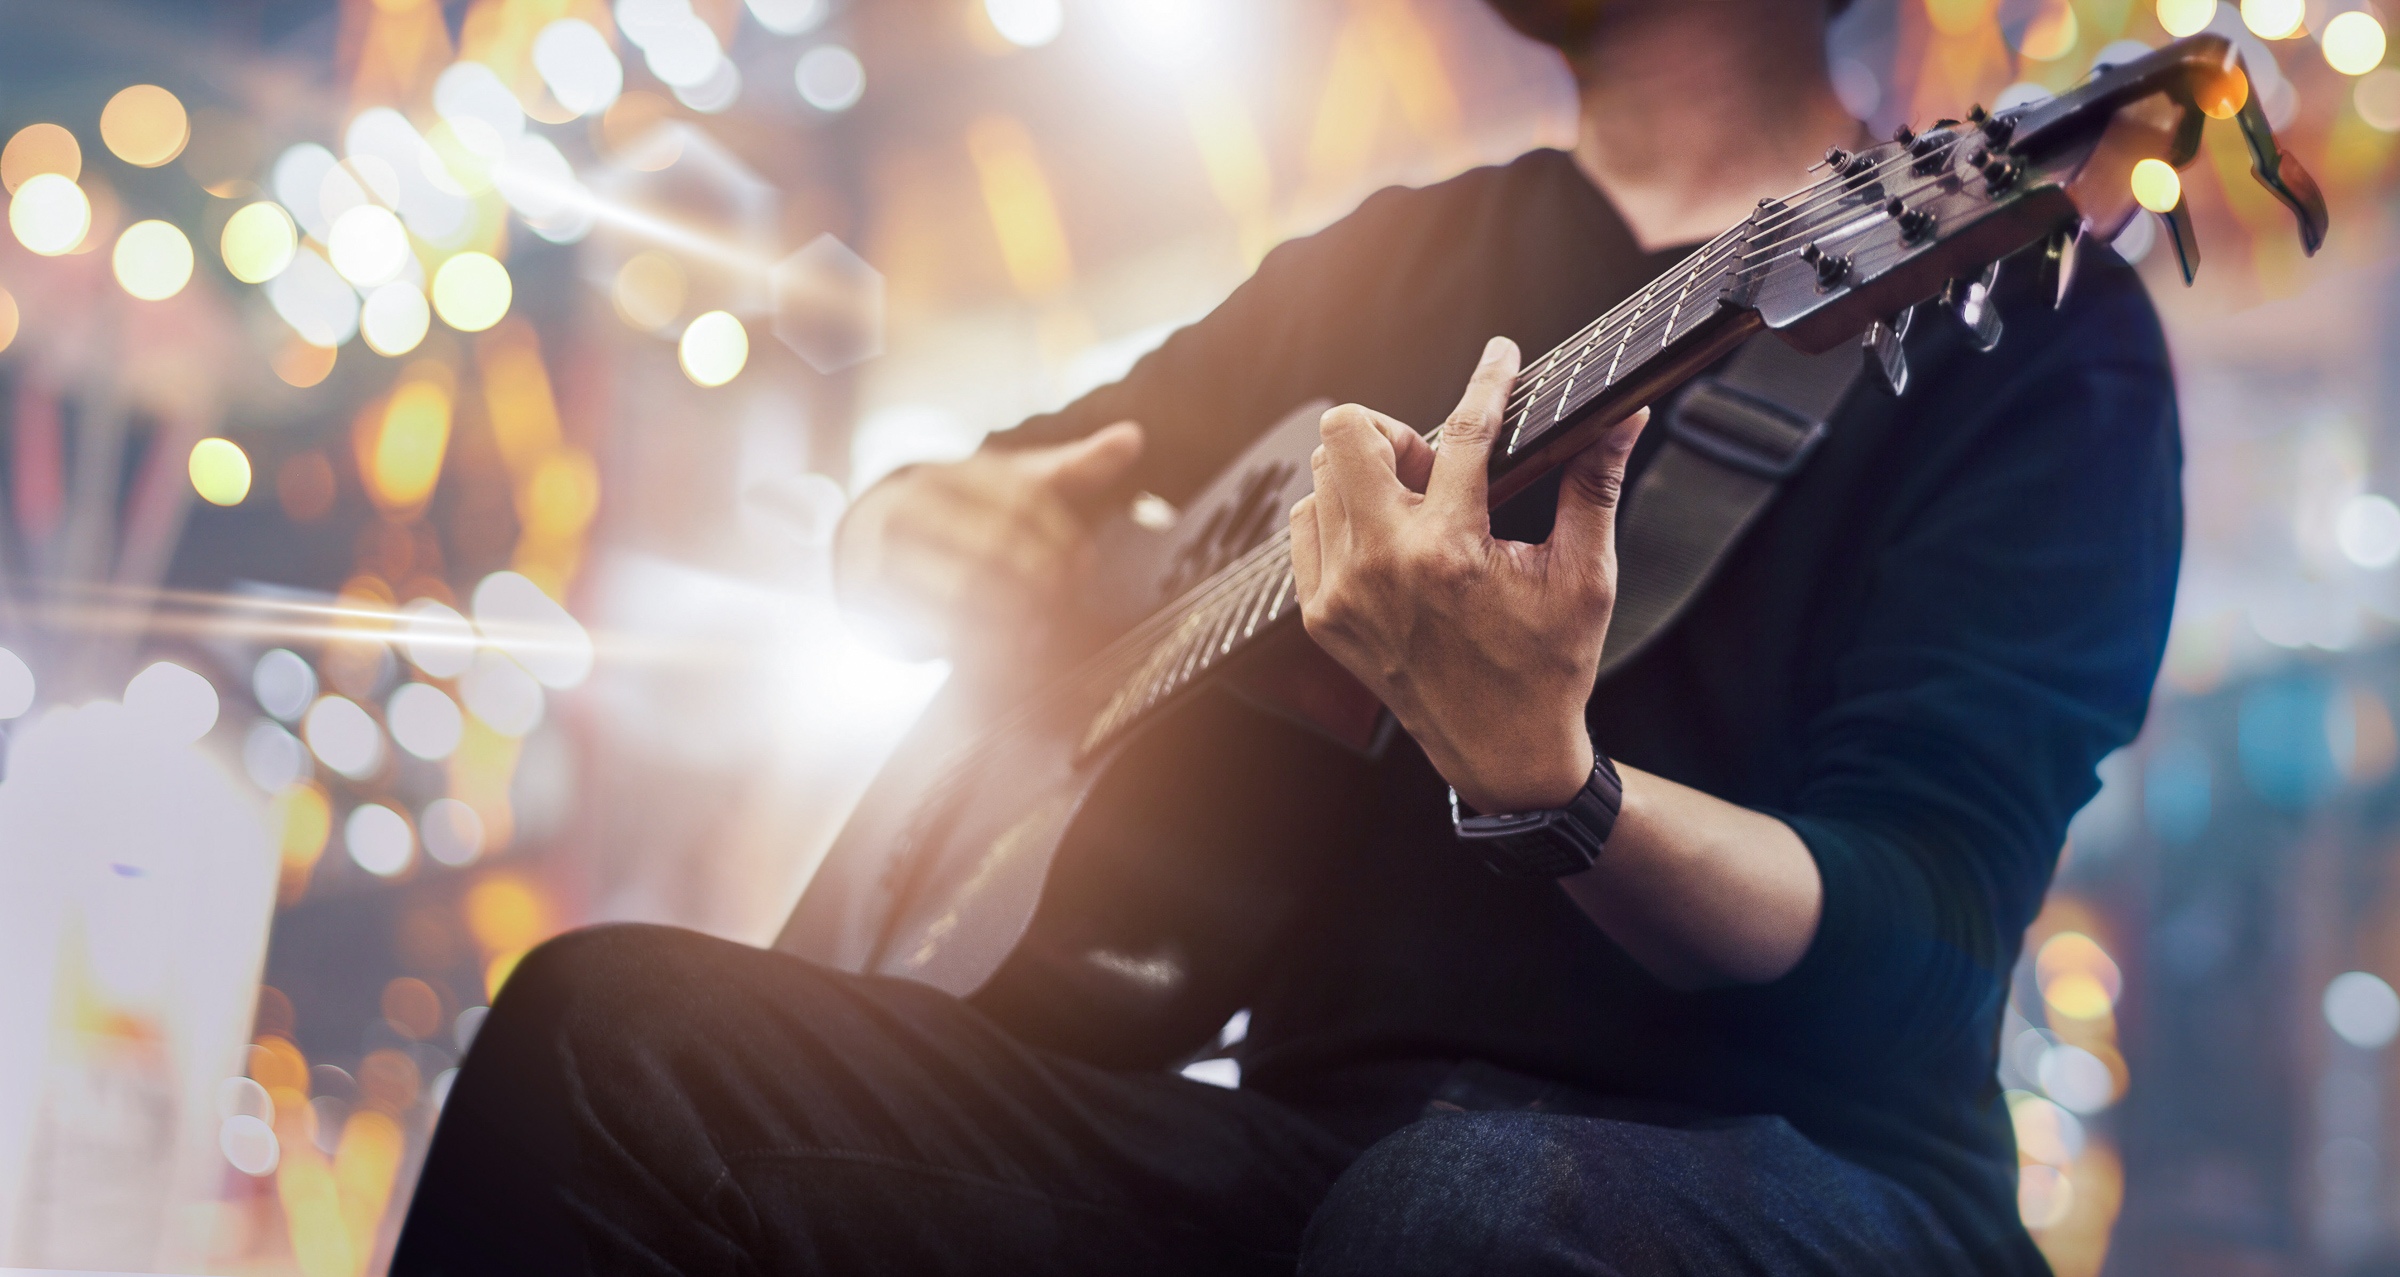 Guitarist on stage and sings at a concert for background, soft bokeh and blur